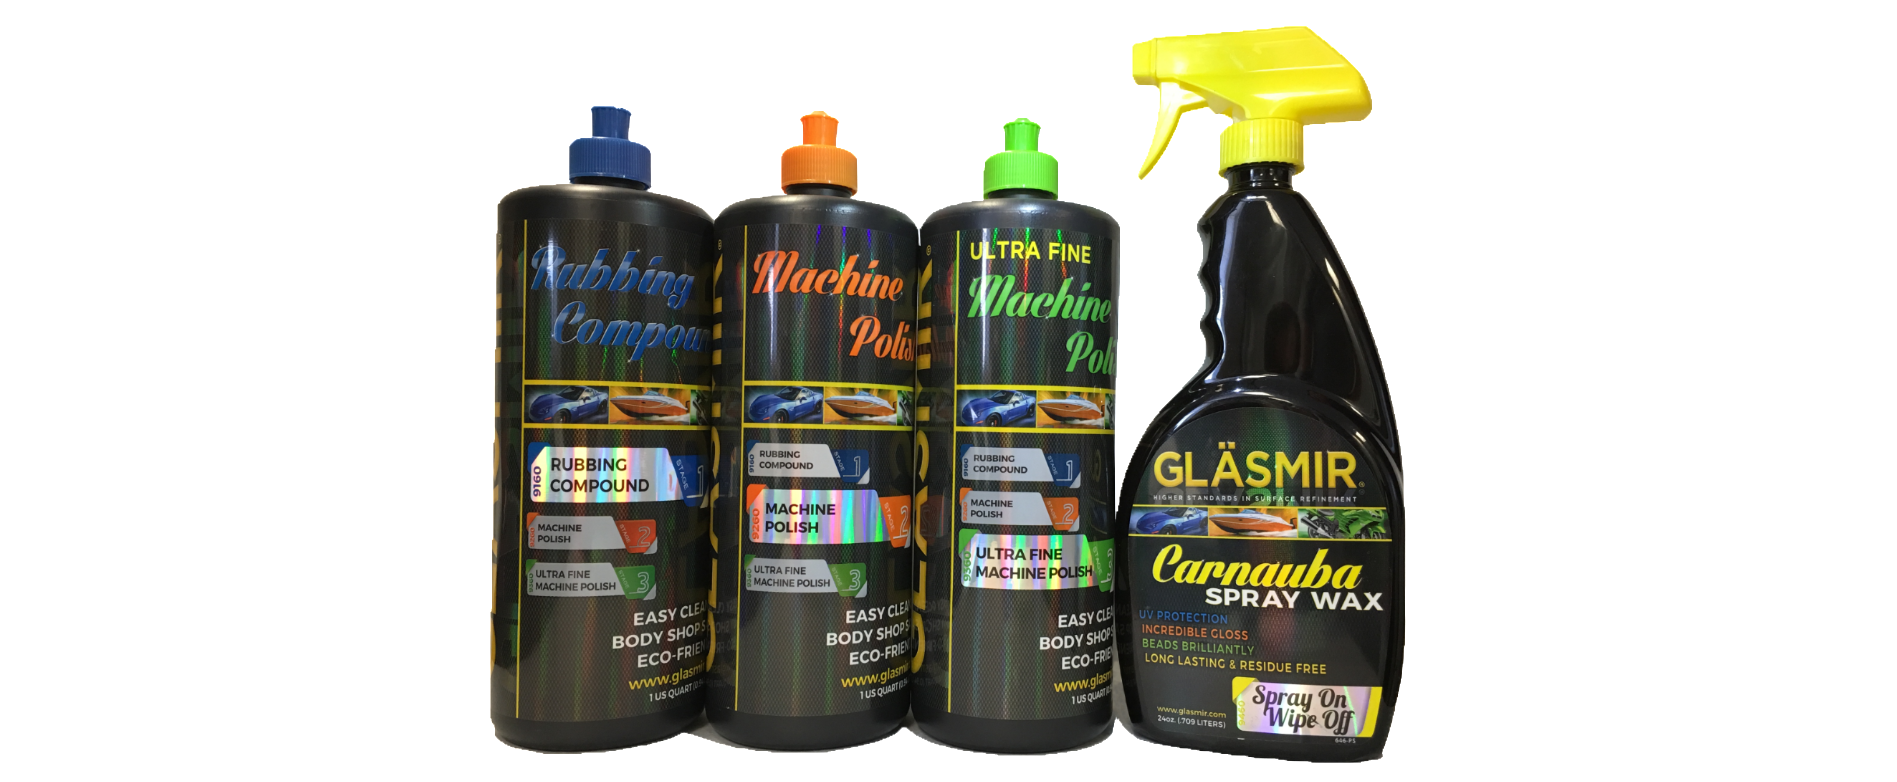 glasmir product pic for web scrolling.PNG